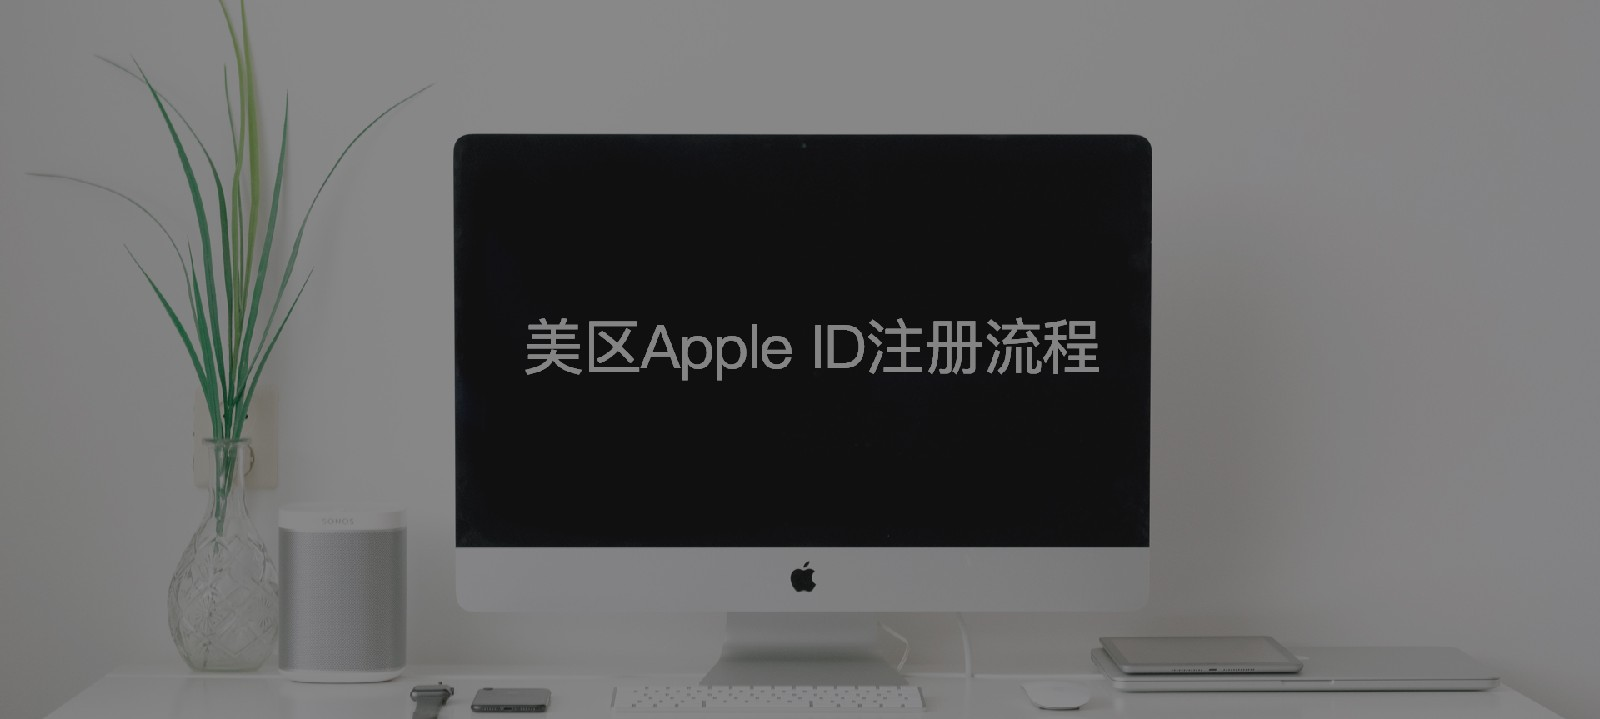 【玩机技巧】2020最新美区Apple ID注册流程